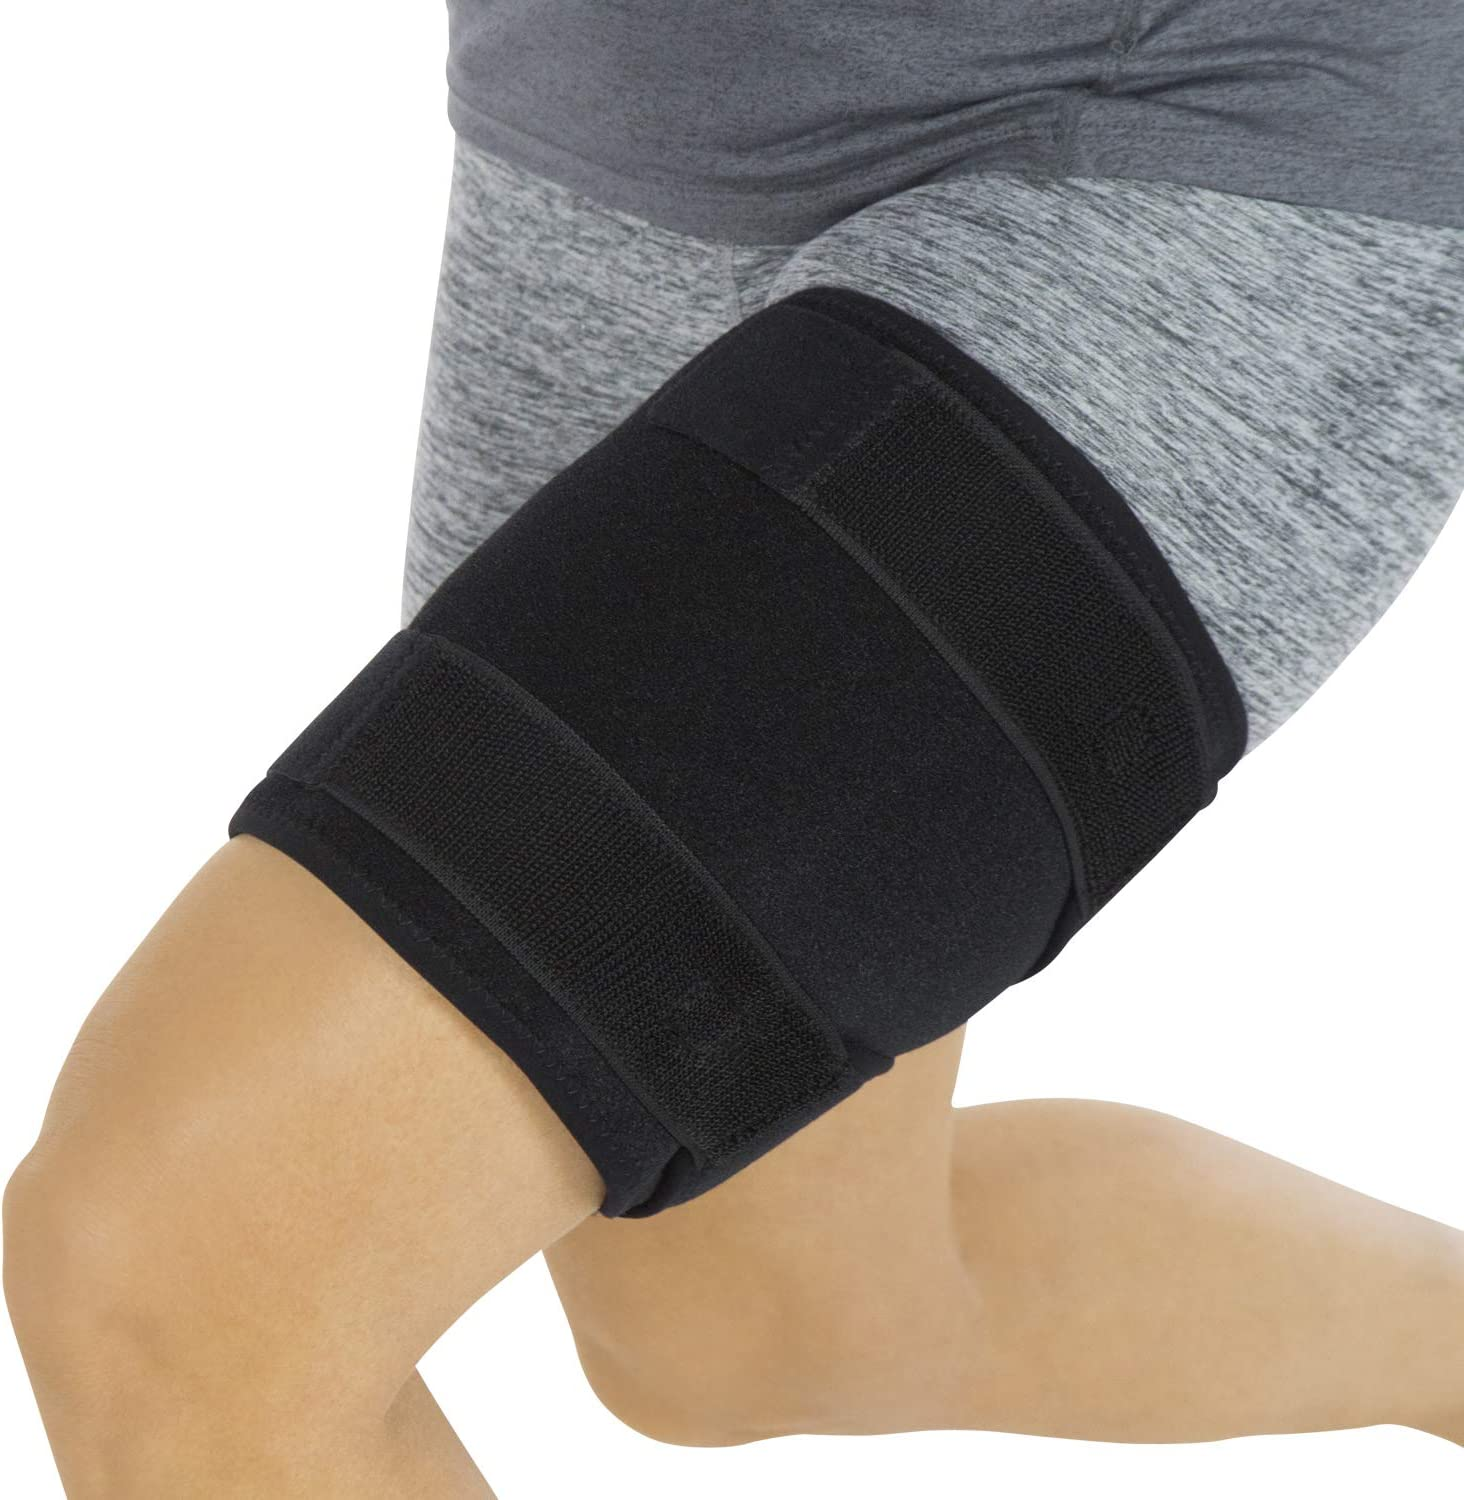 Vive Thigh Brace - Hamstring Quad Wrap - Adjustable Compression Sleeve Support for Pulled Groin Muscle, Sprains, Quadricep, Tendinitis, Workouts, Cellulite Slimmer, Sports Injury Recovery - Men, Women: Sports & Outdoors